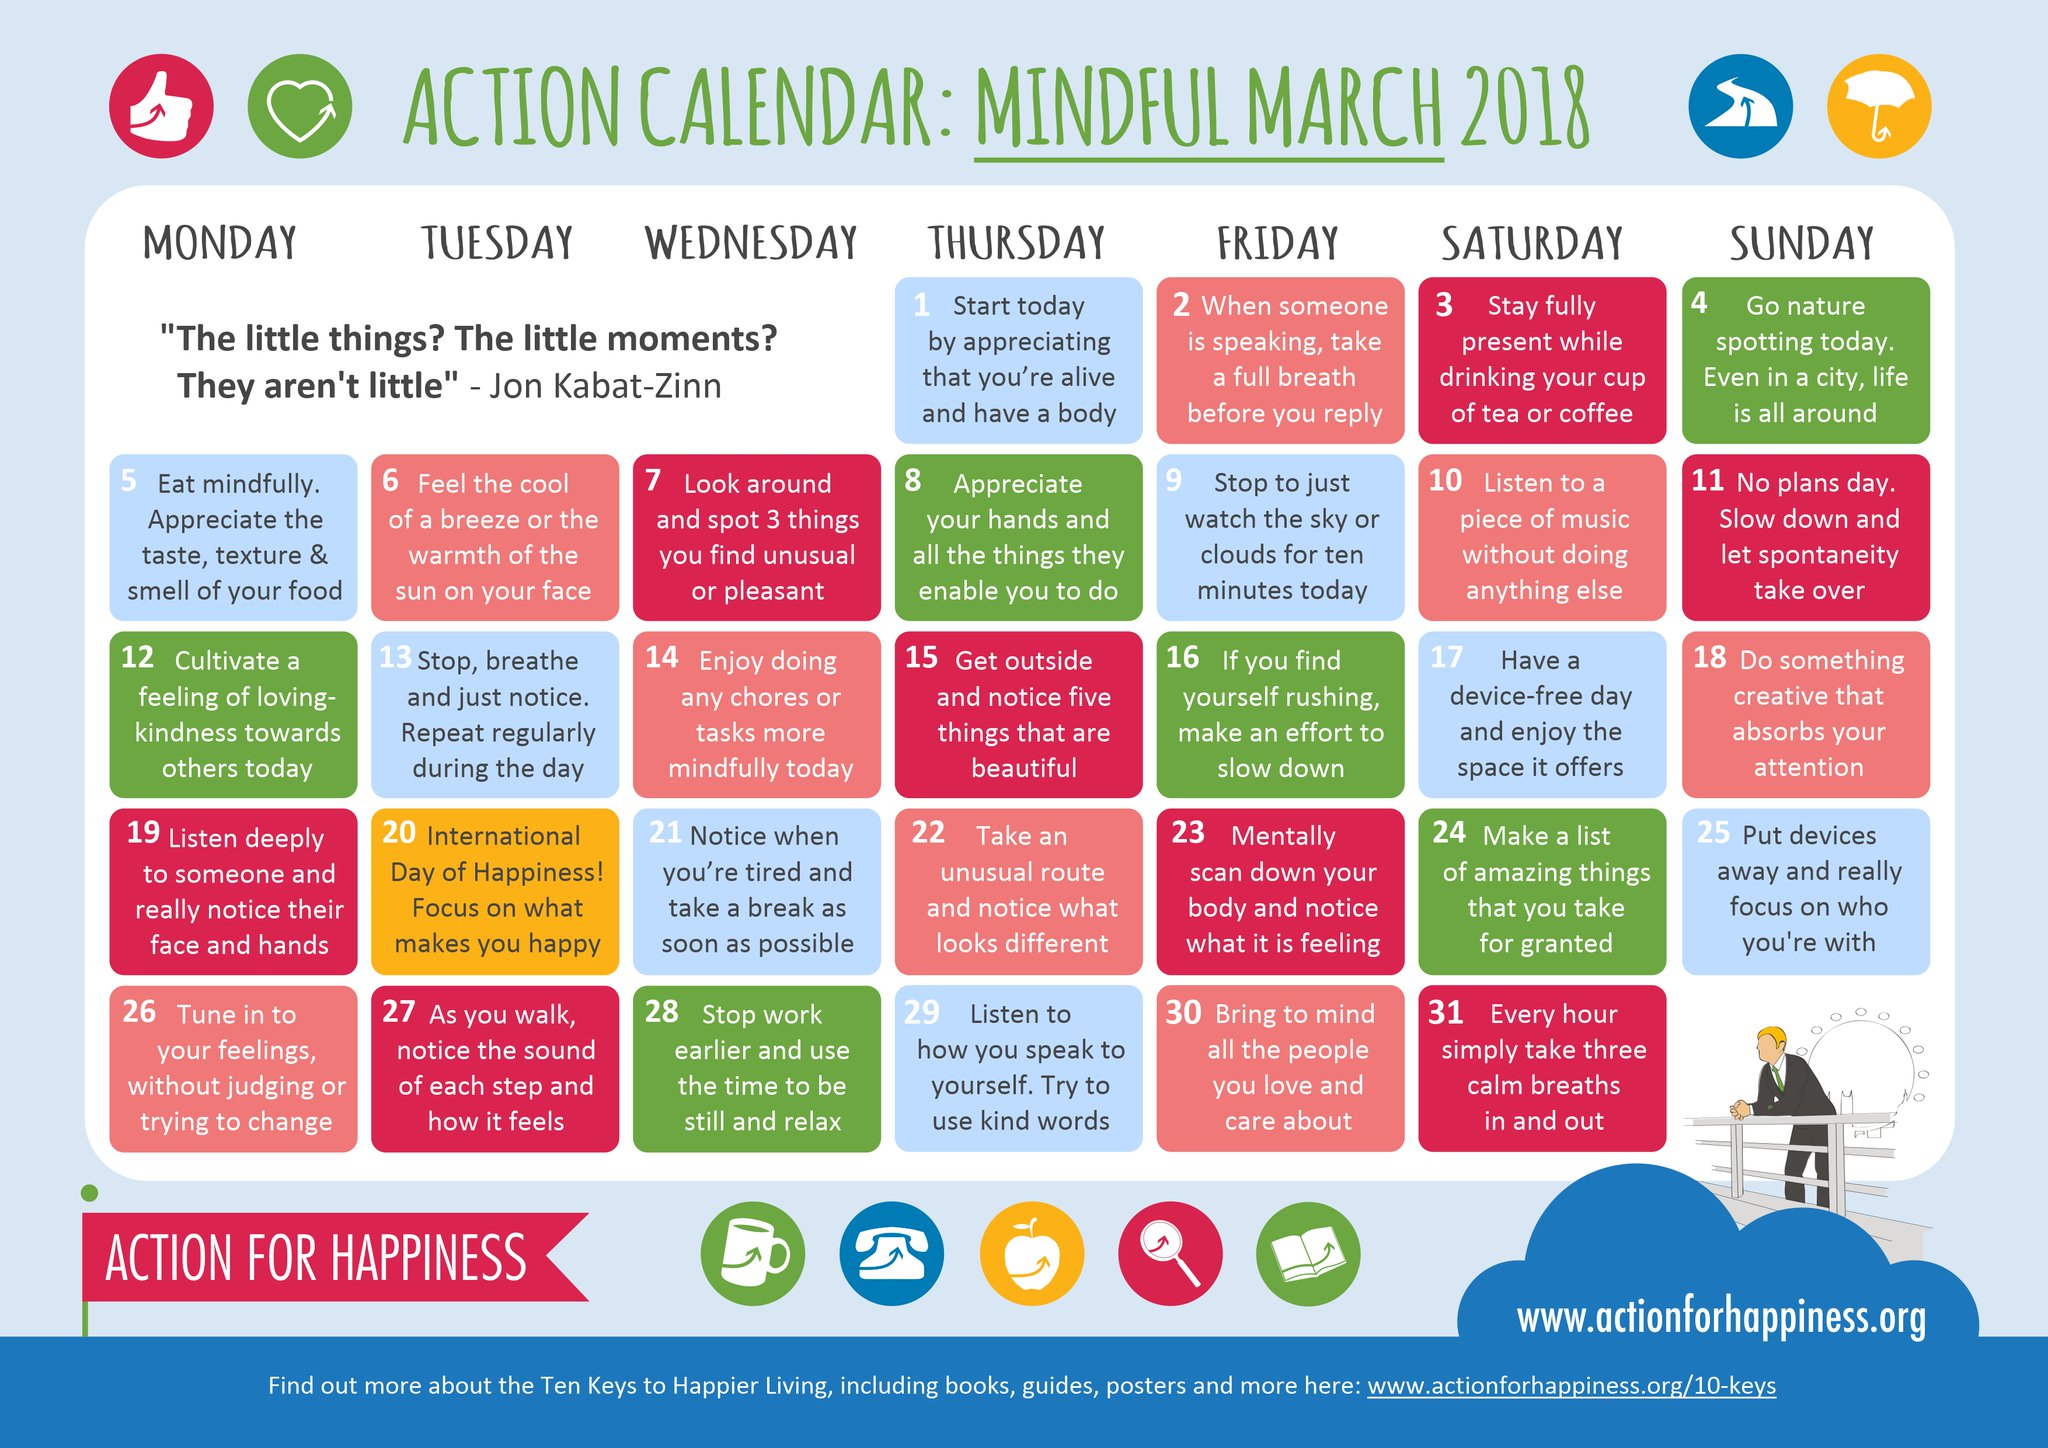 Get your Calendar for Mindful March from Action for